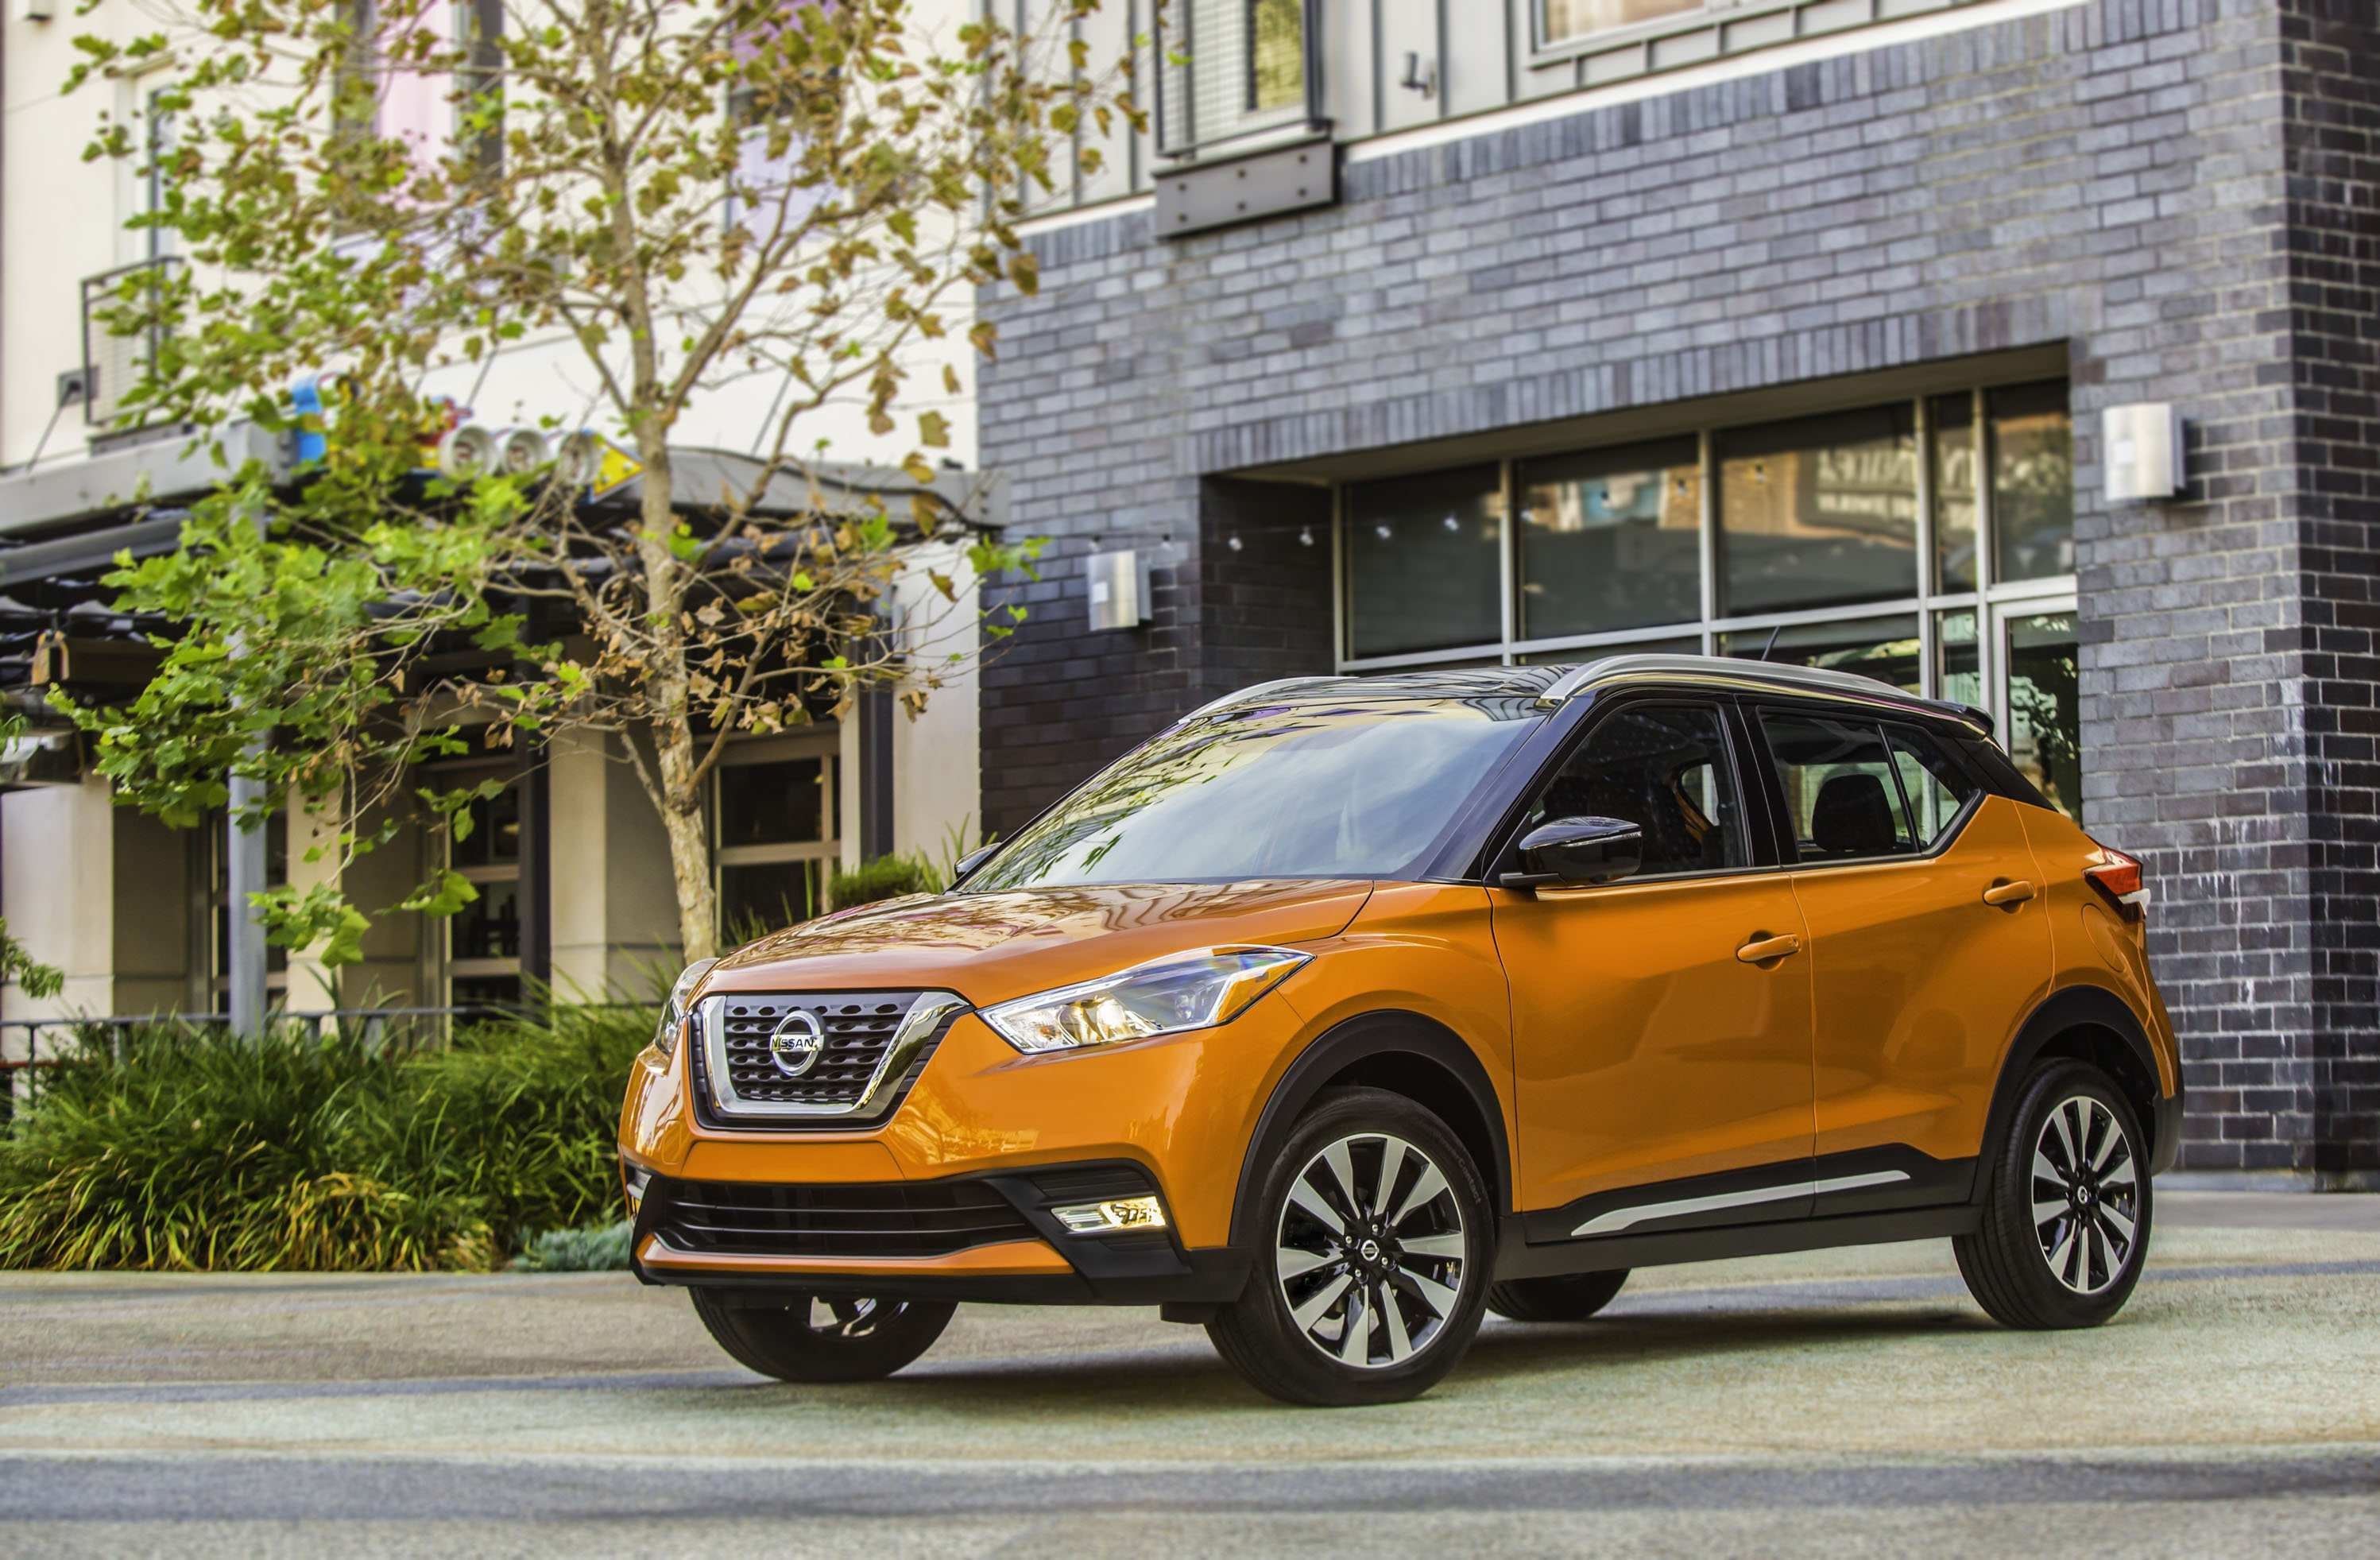 49 Best Review Nissan Kicks 2019 Preco Specs And Review Performance and New Engine by Nissan Kicks 2019 Preco Specs And Review